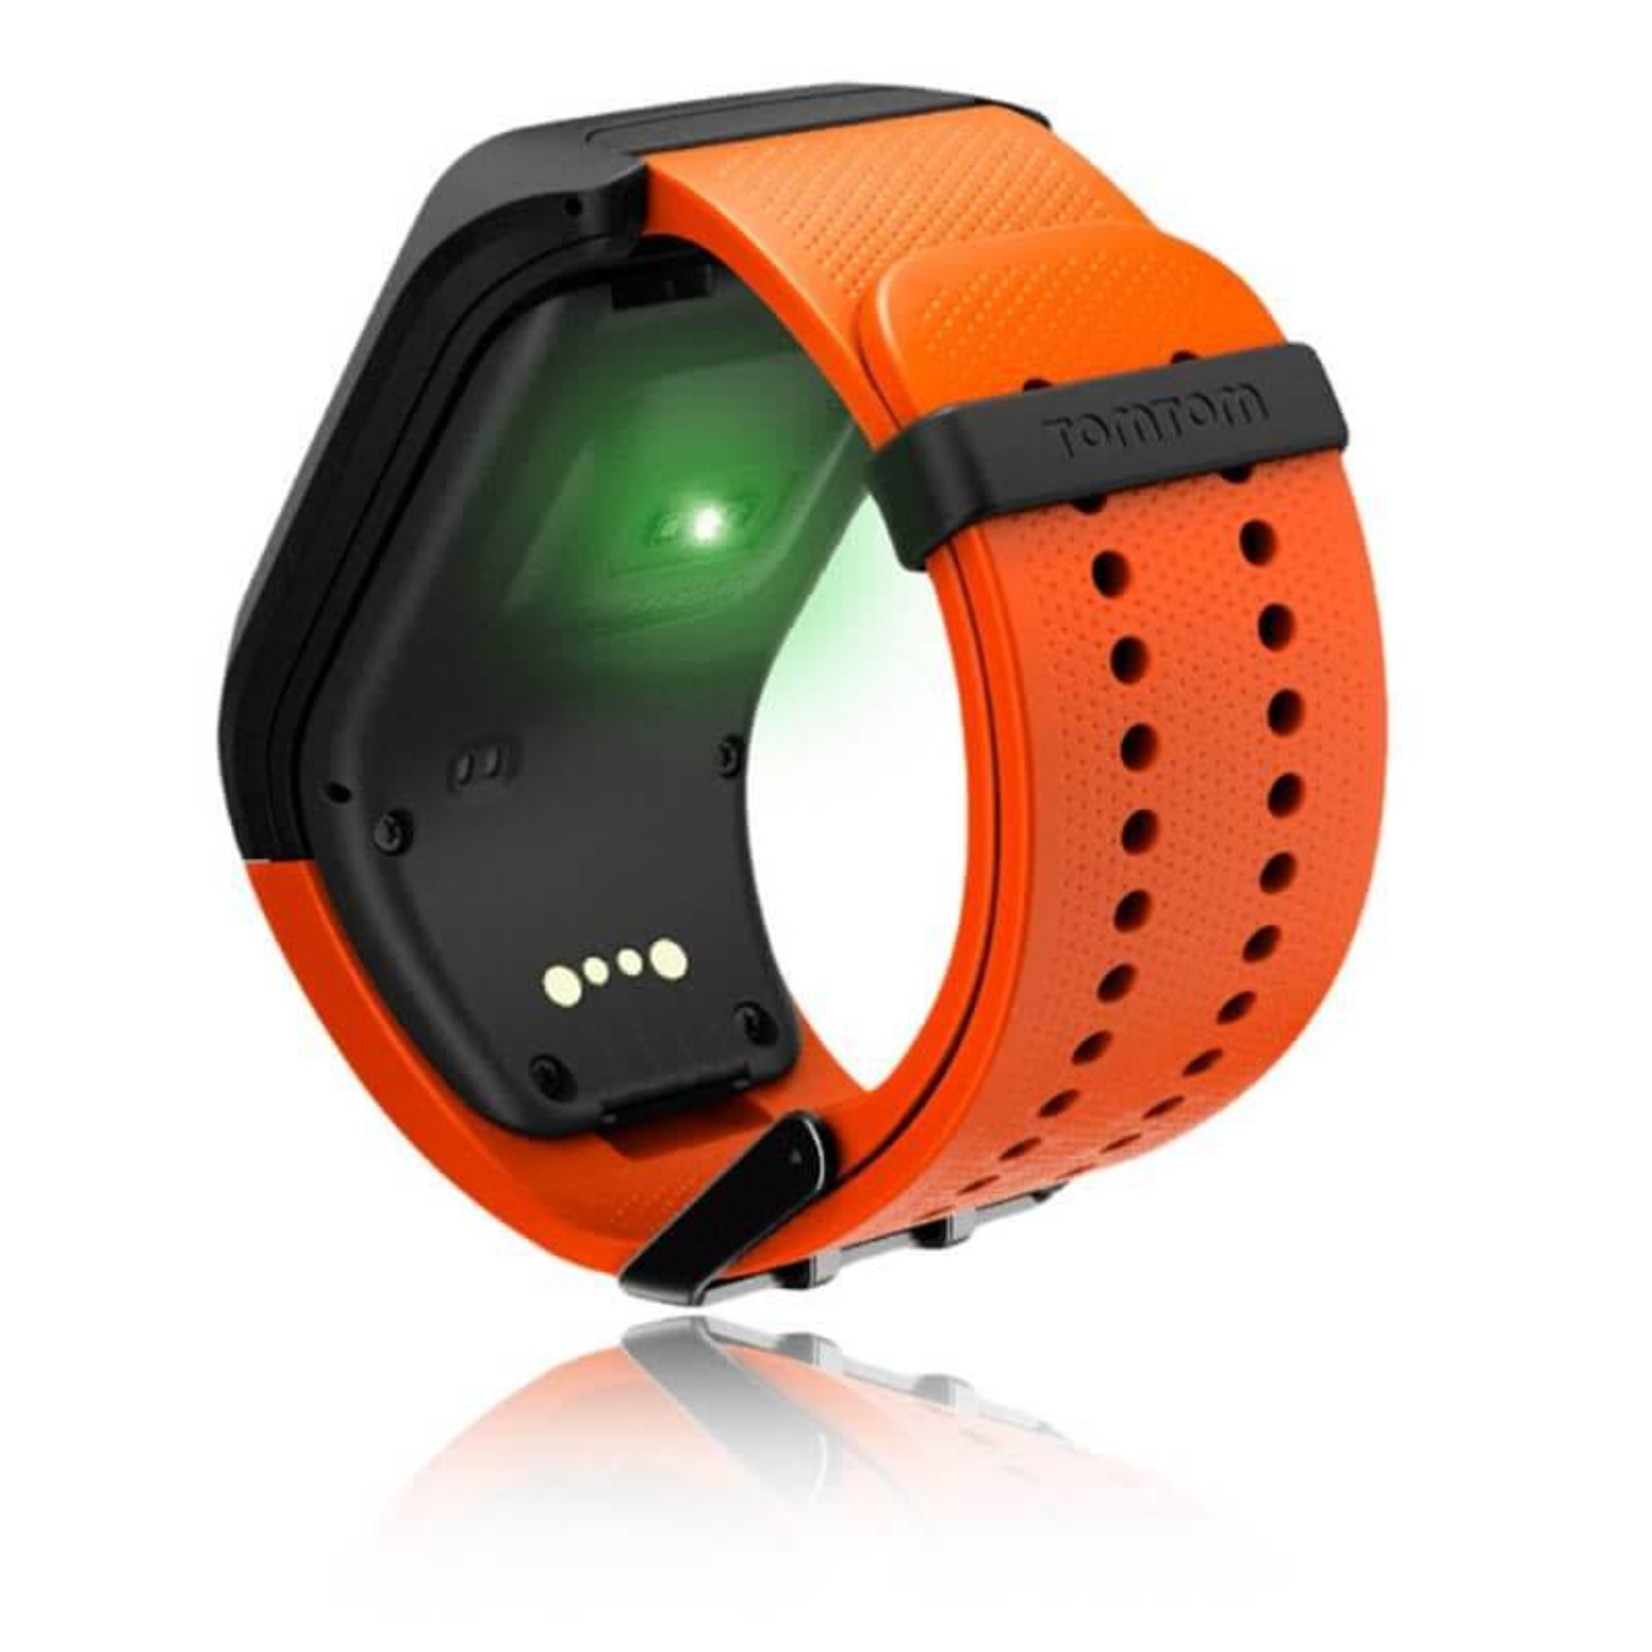 TomTom Adventurer GPS Cardio Outdoor Watch